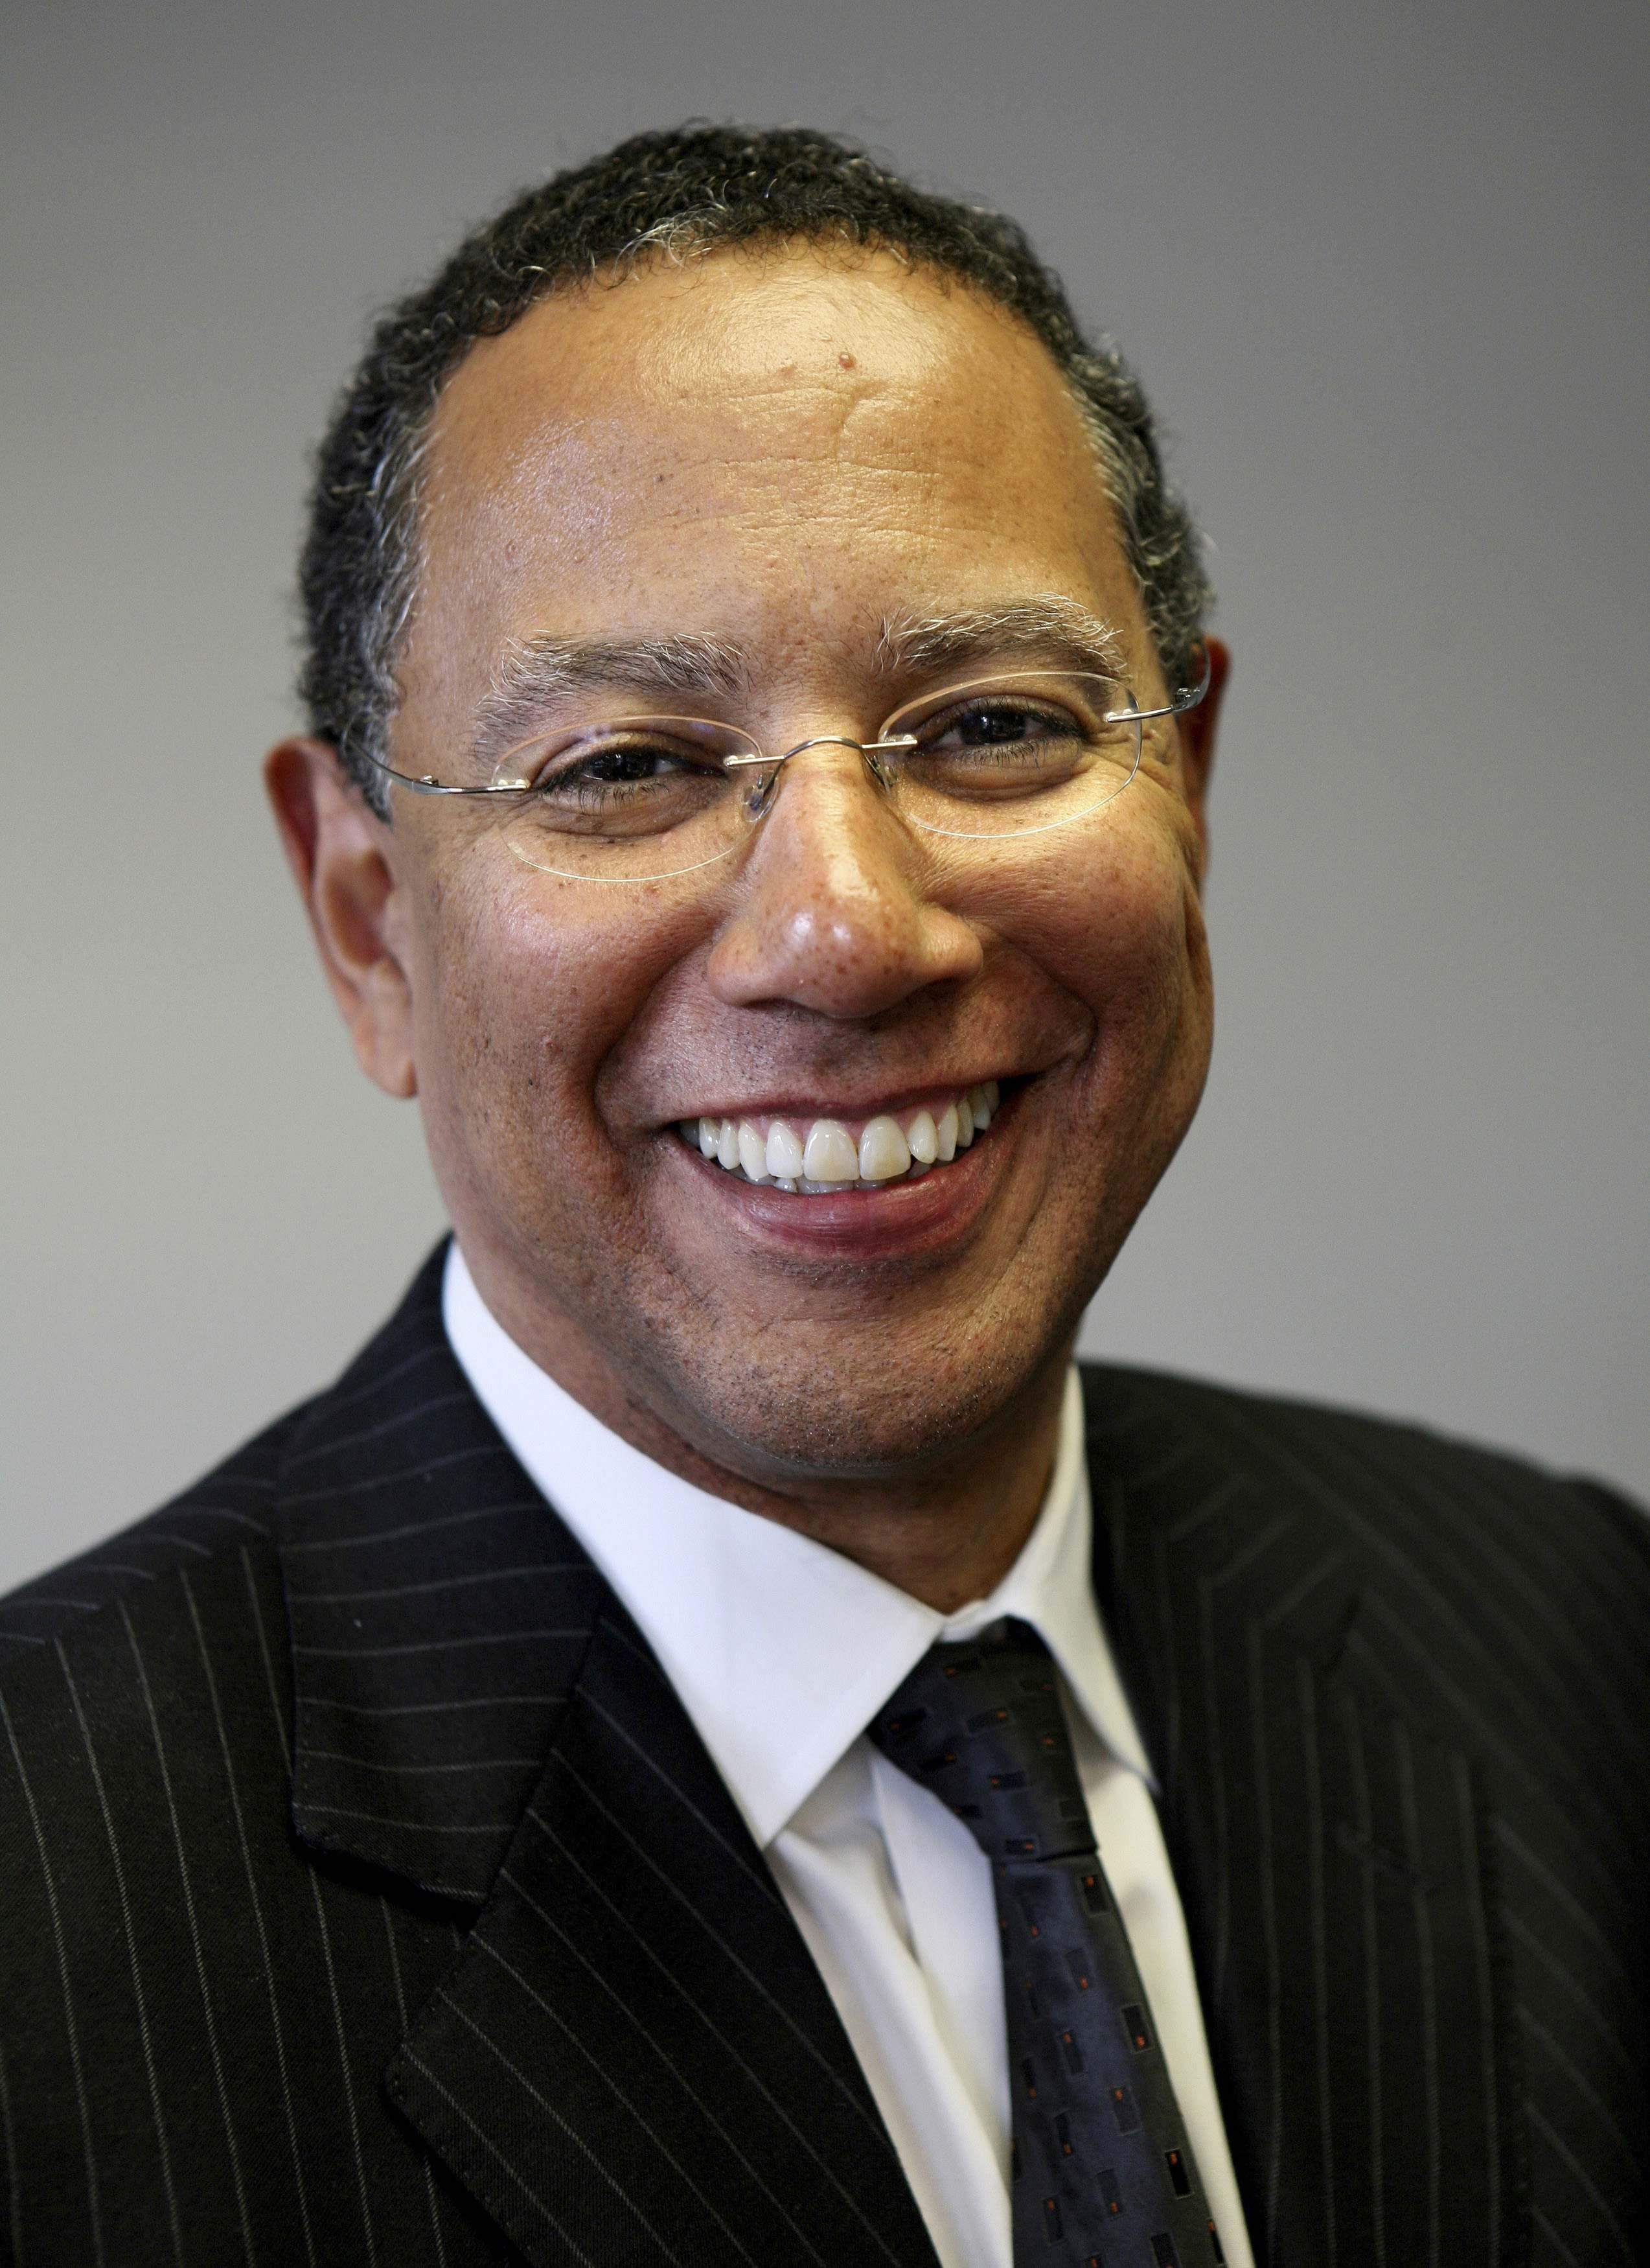 Managing Editor Dean Baquet is shown in this handout photo provided by the New York Times on May 14, 2014.